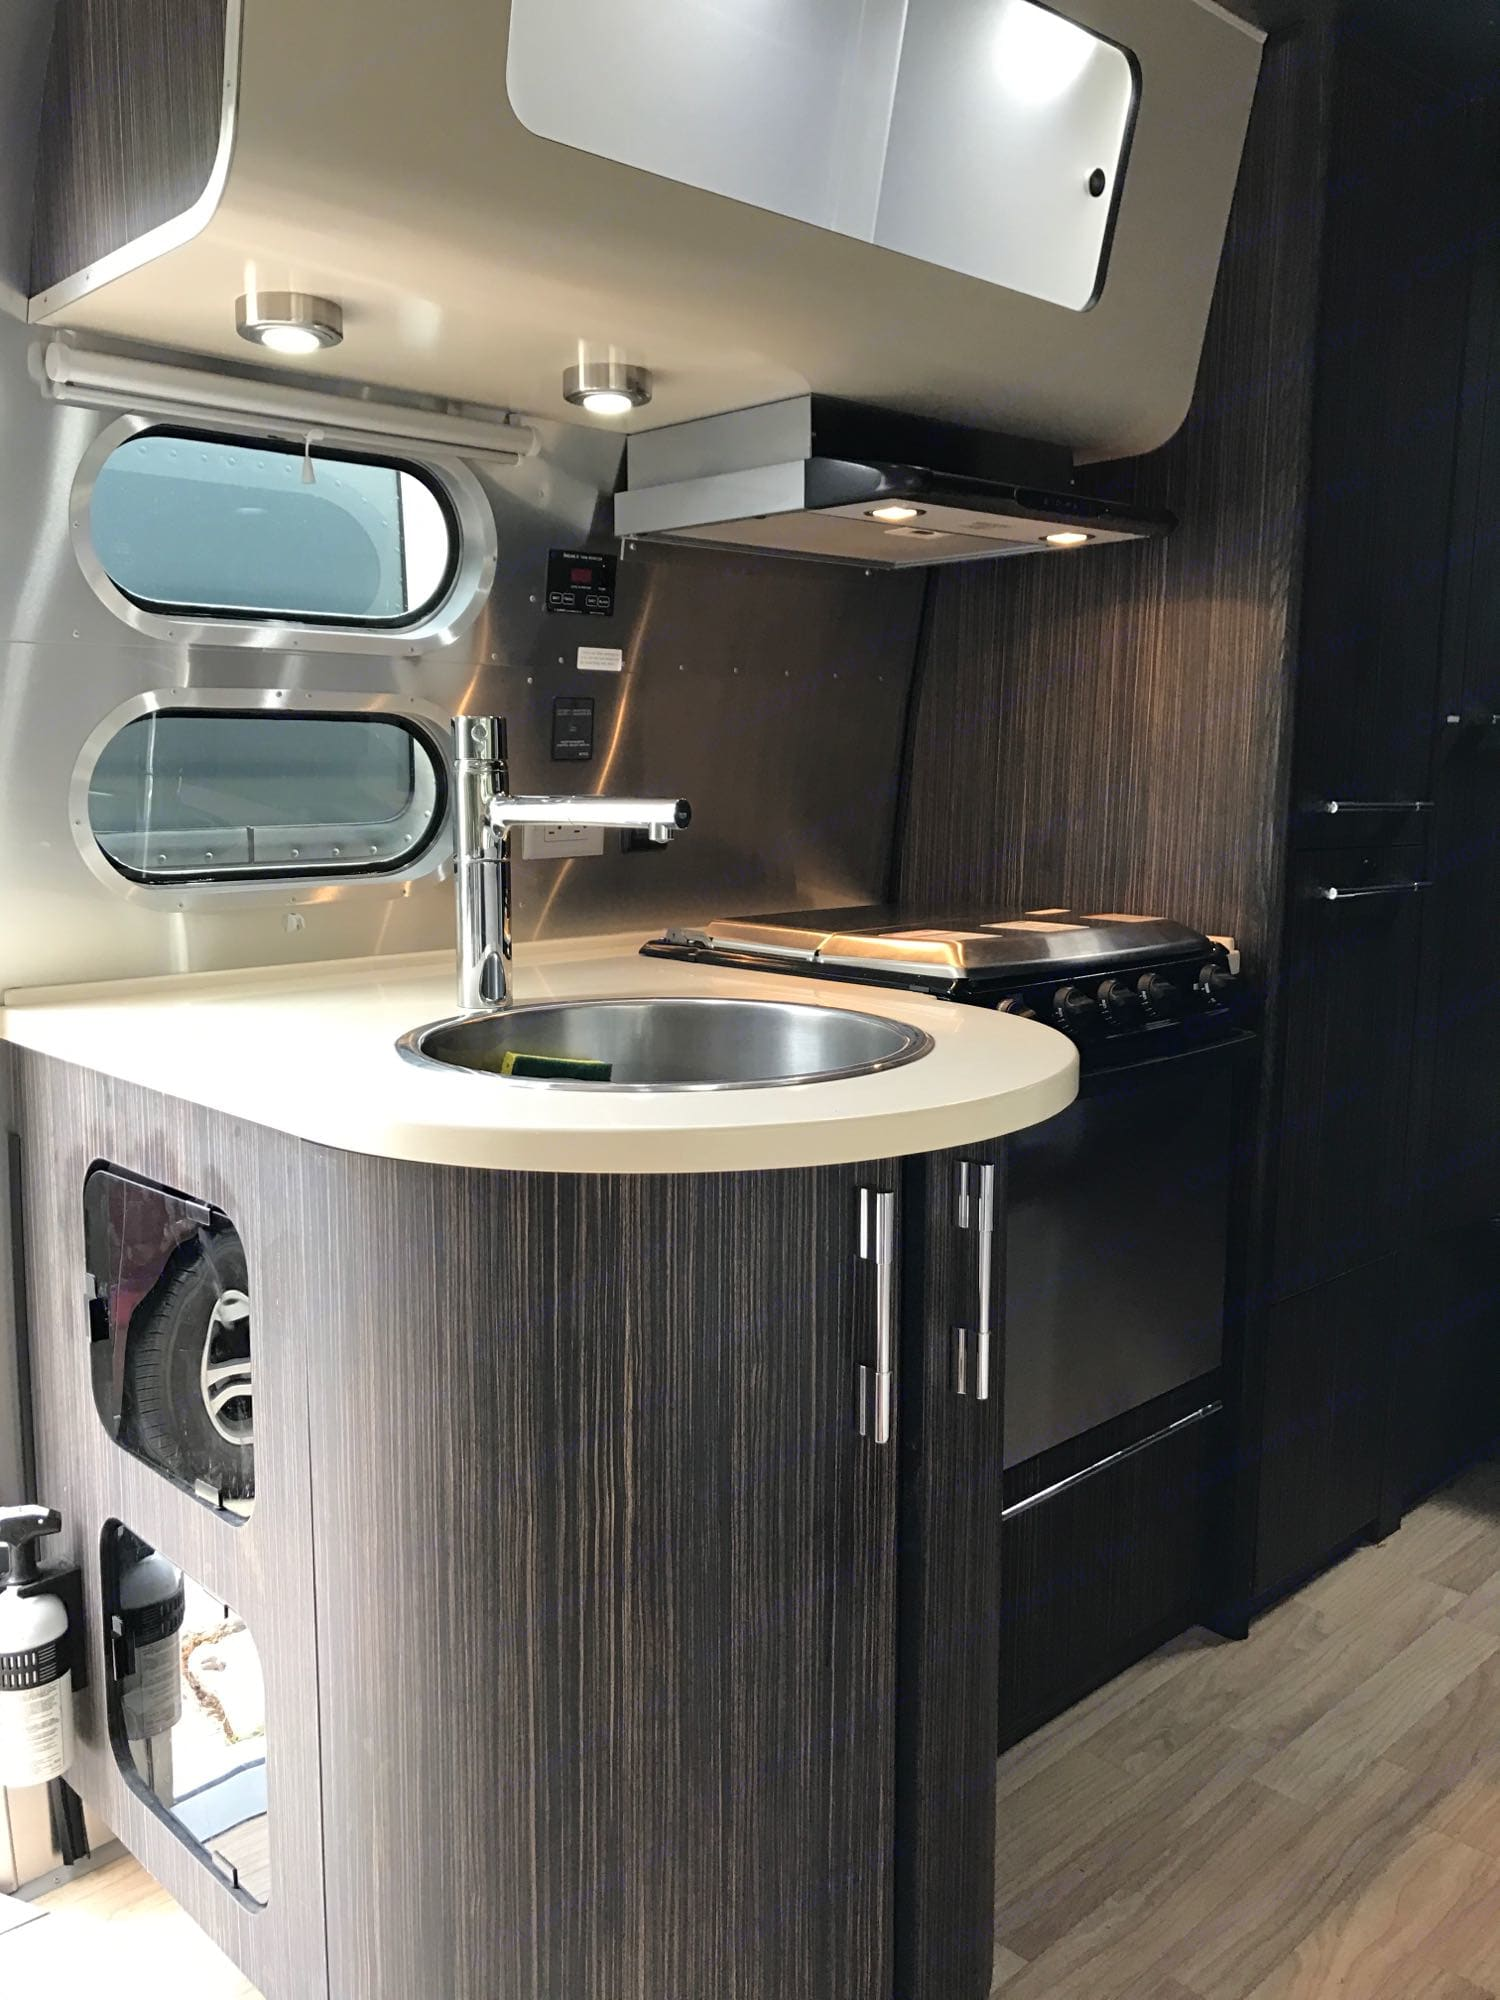 gas cooktop and oven. Airstream International 2015